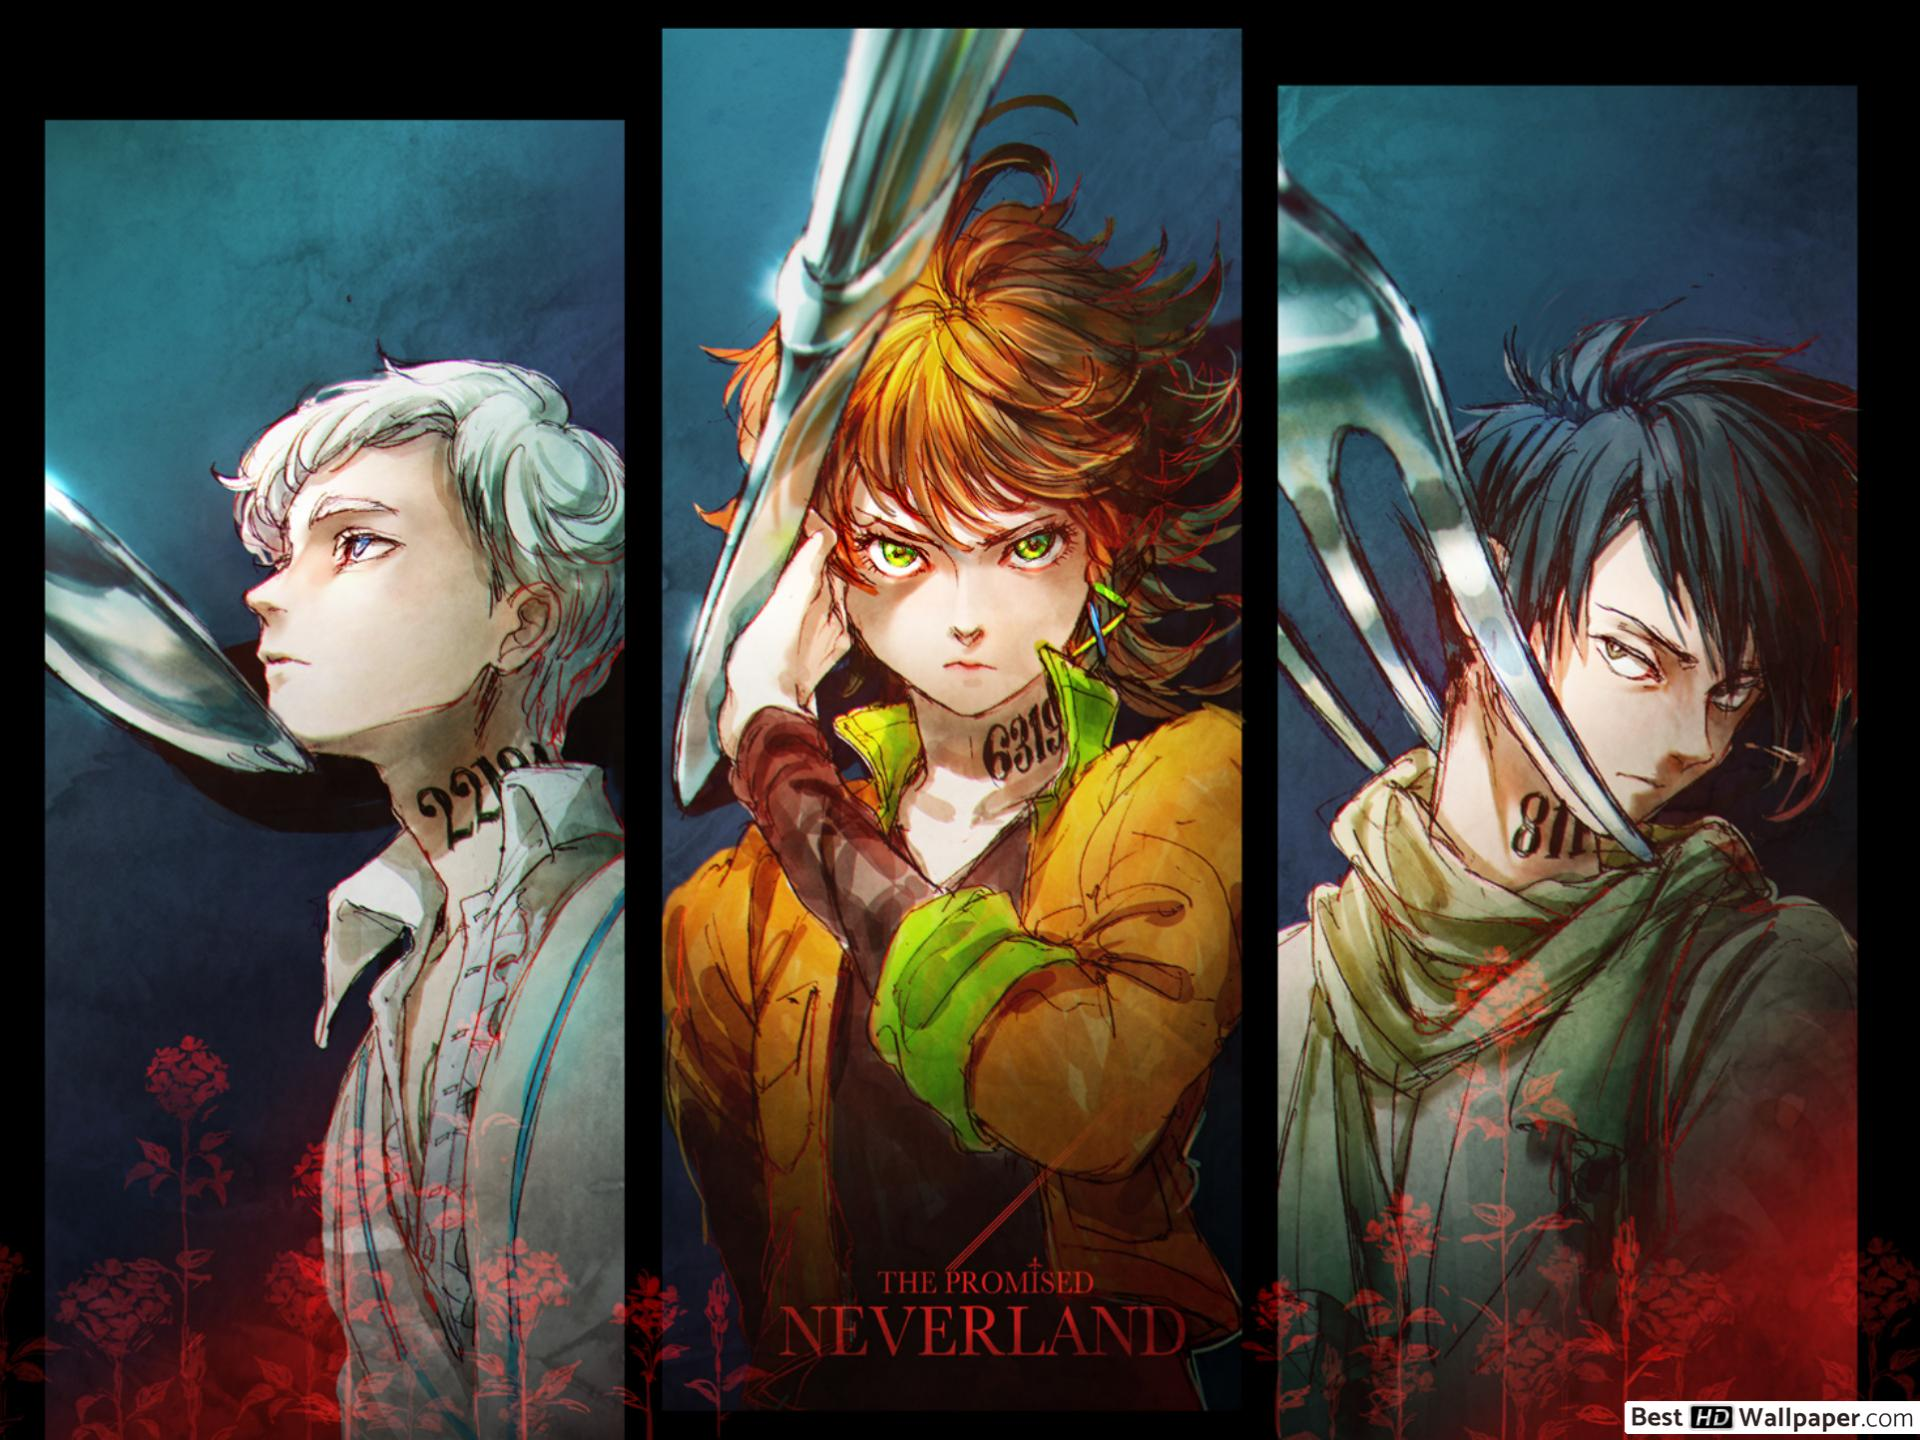 Emma The Promised Neverland 1920x1440 Wallpaper Teahub Io